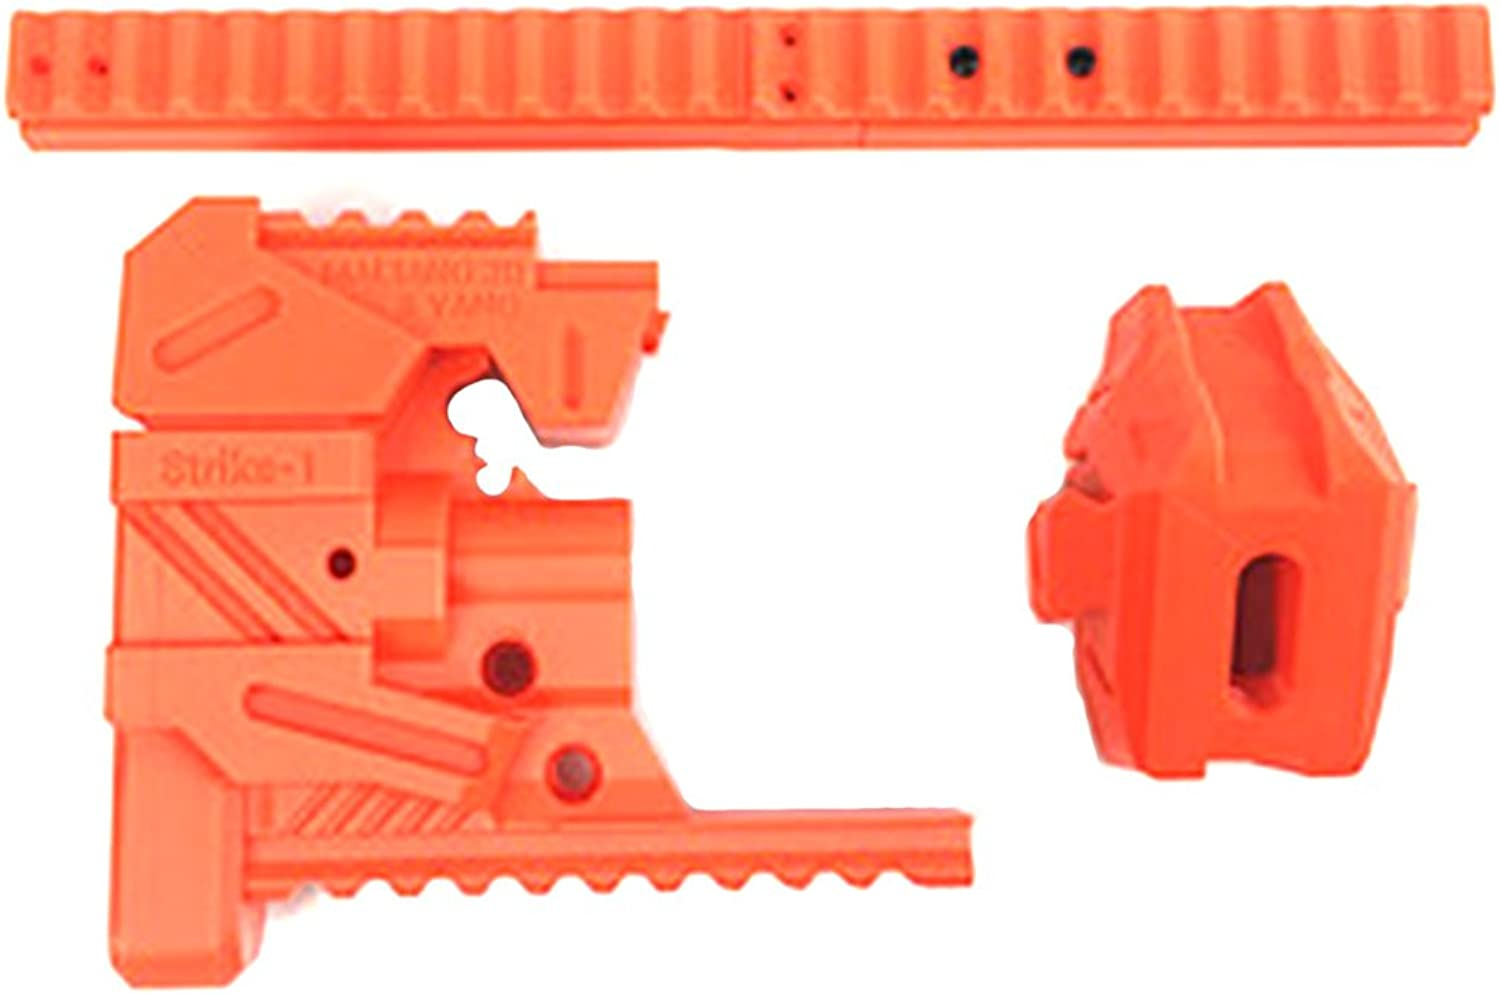 LoKauf 3D Printing Science Fiction Style S1 Appearance Modified Kit for Nerf Stryfe